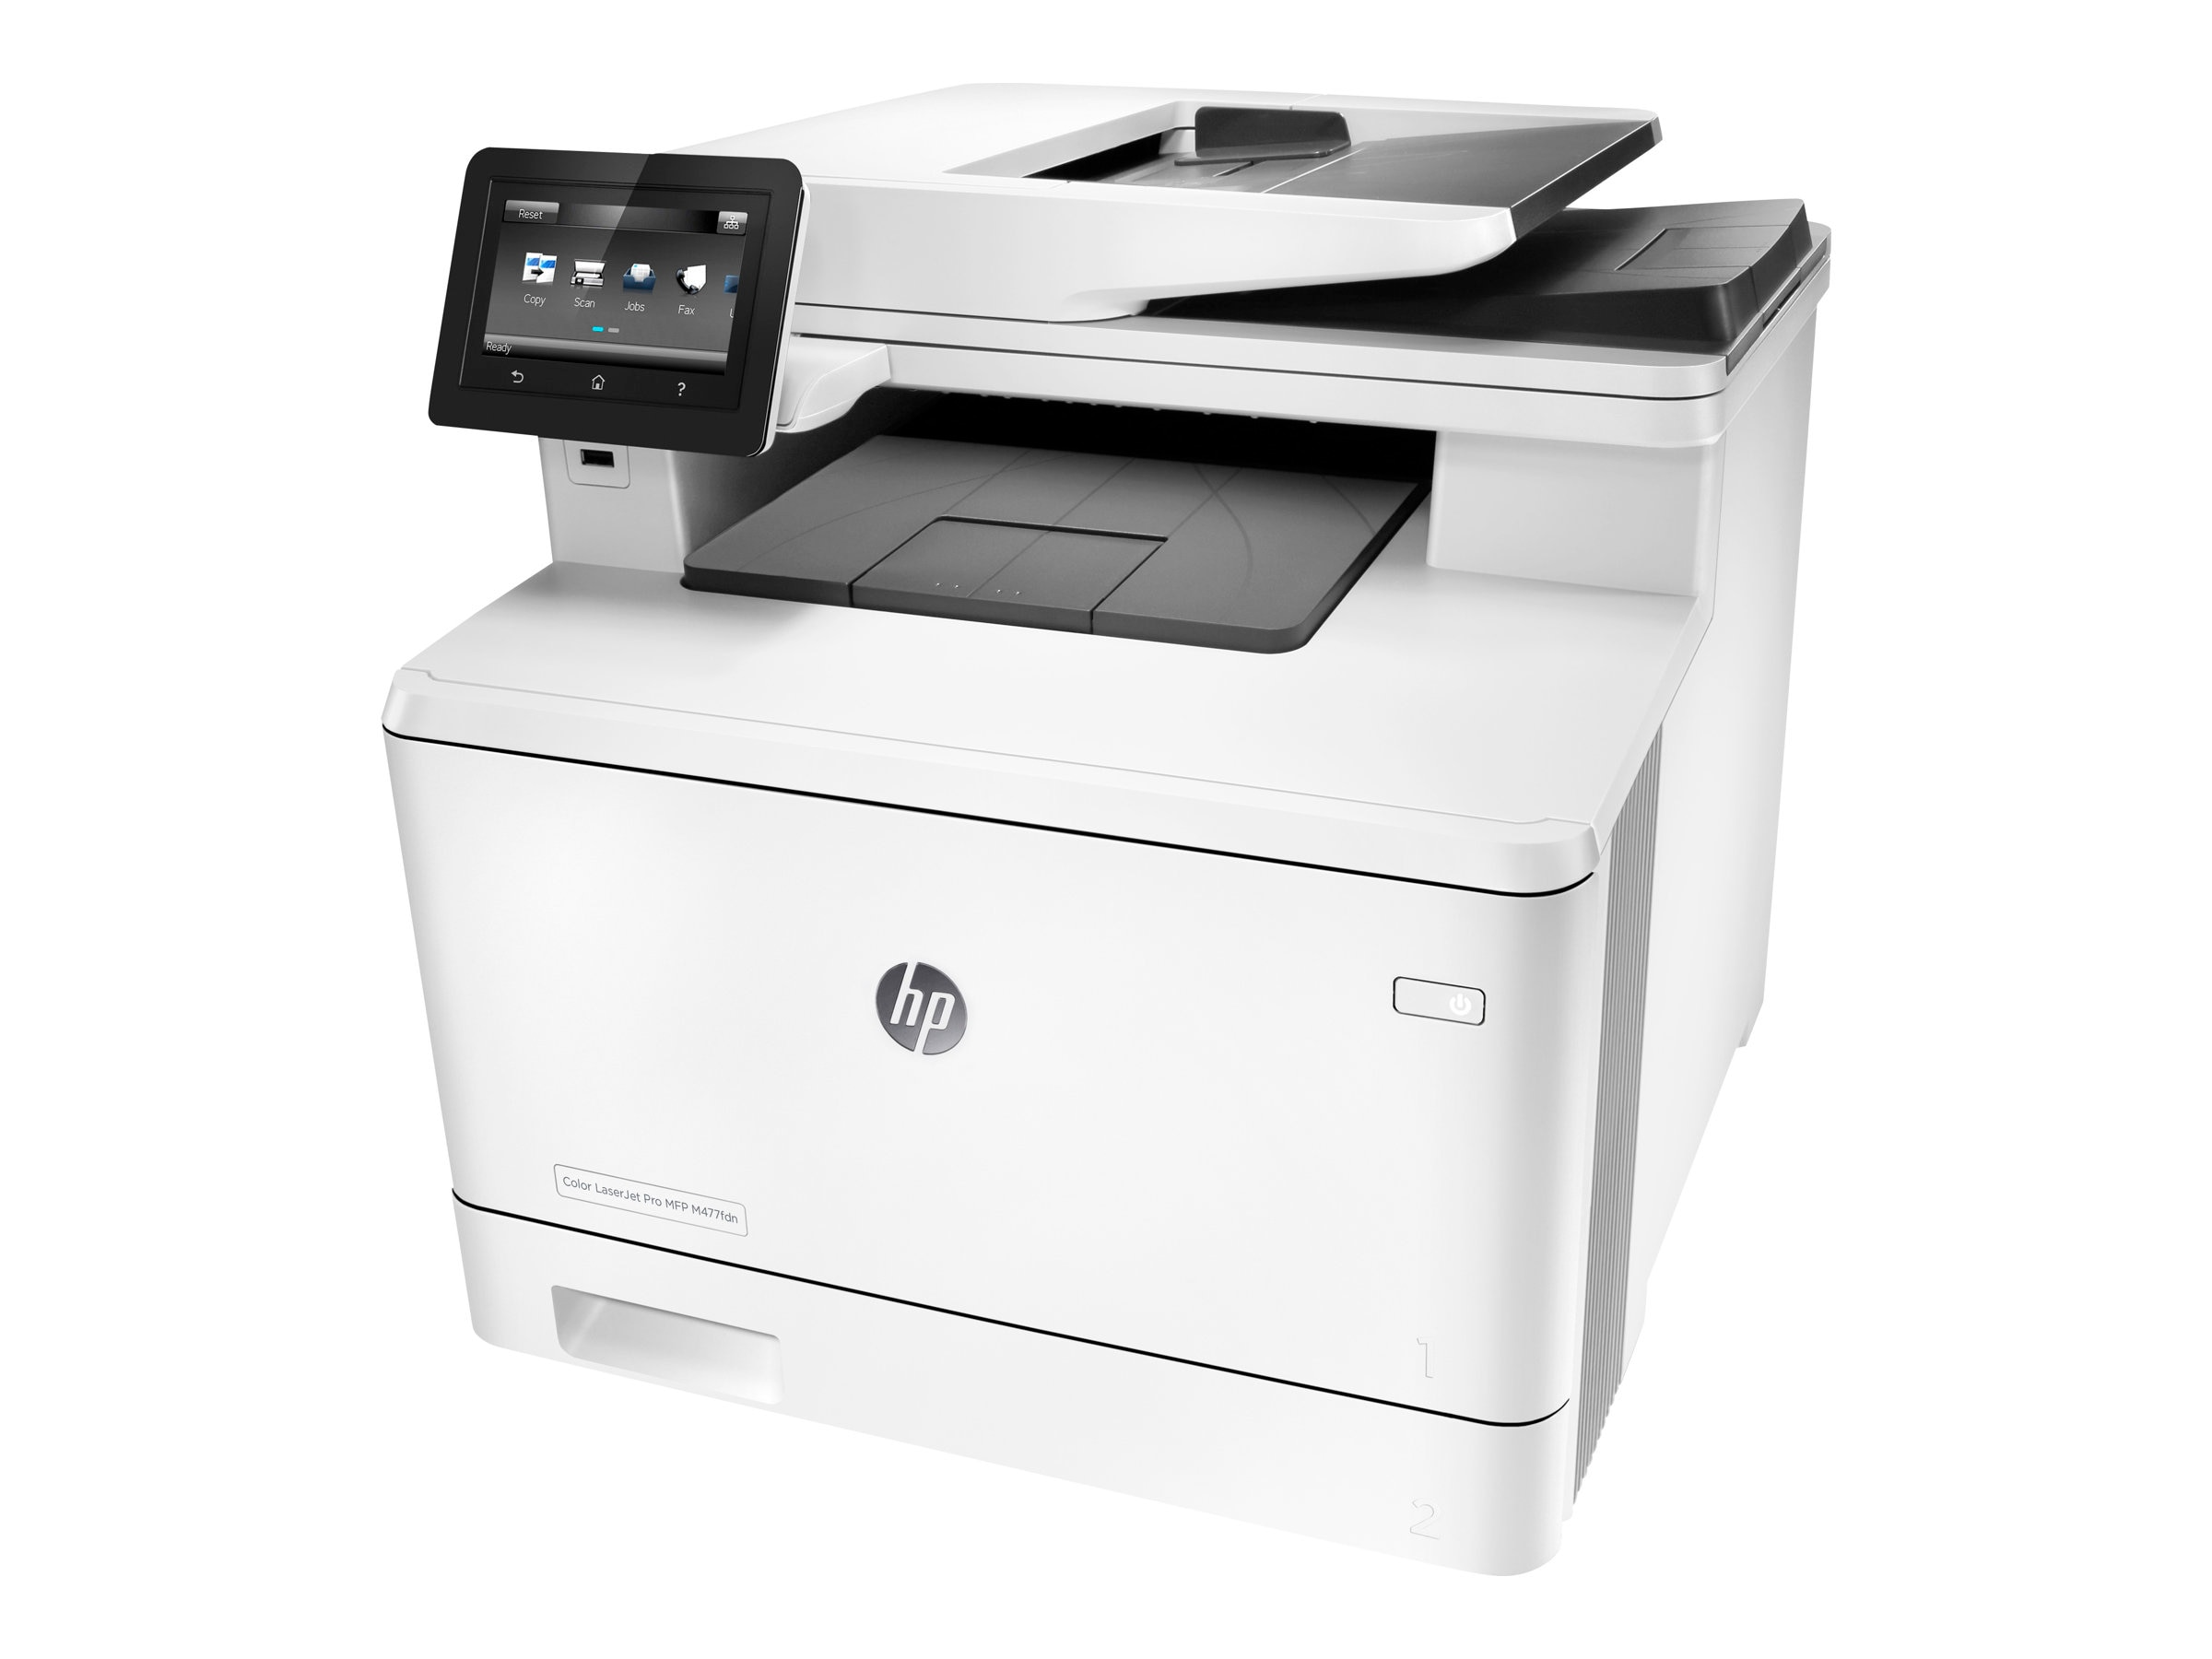 HP Color LaserJet Pro MFP M477fdw ($629-$200 IR = $429. Expires 8 31 2017)